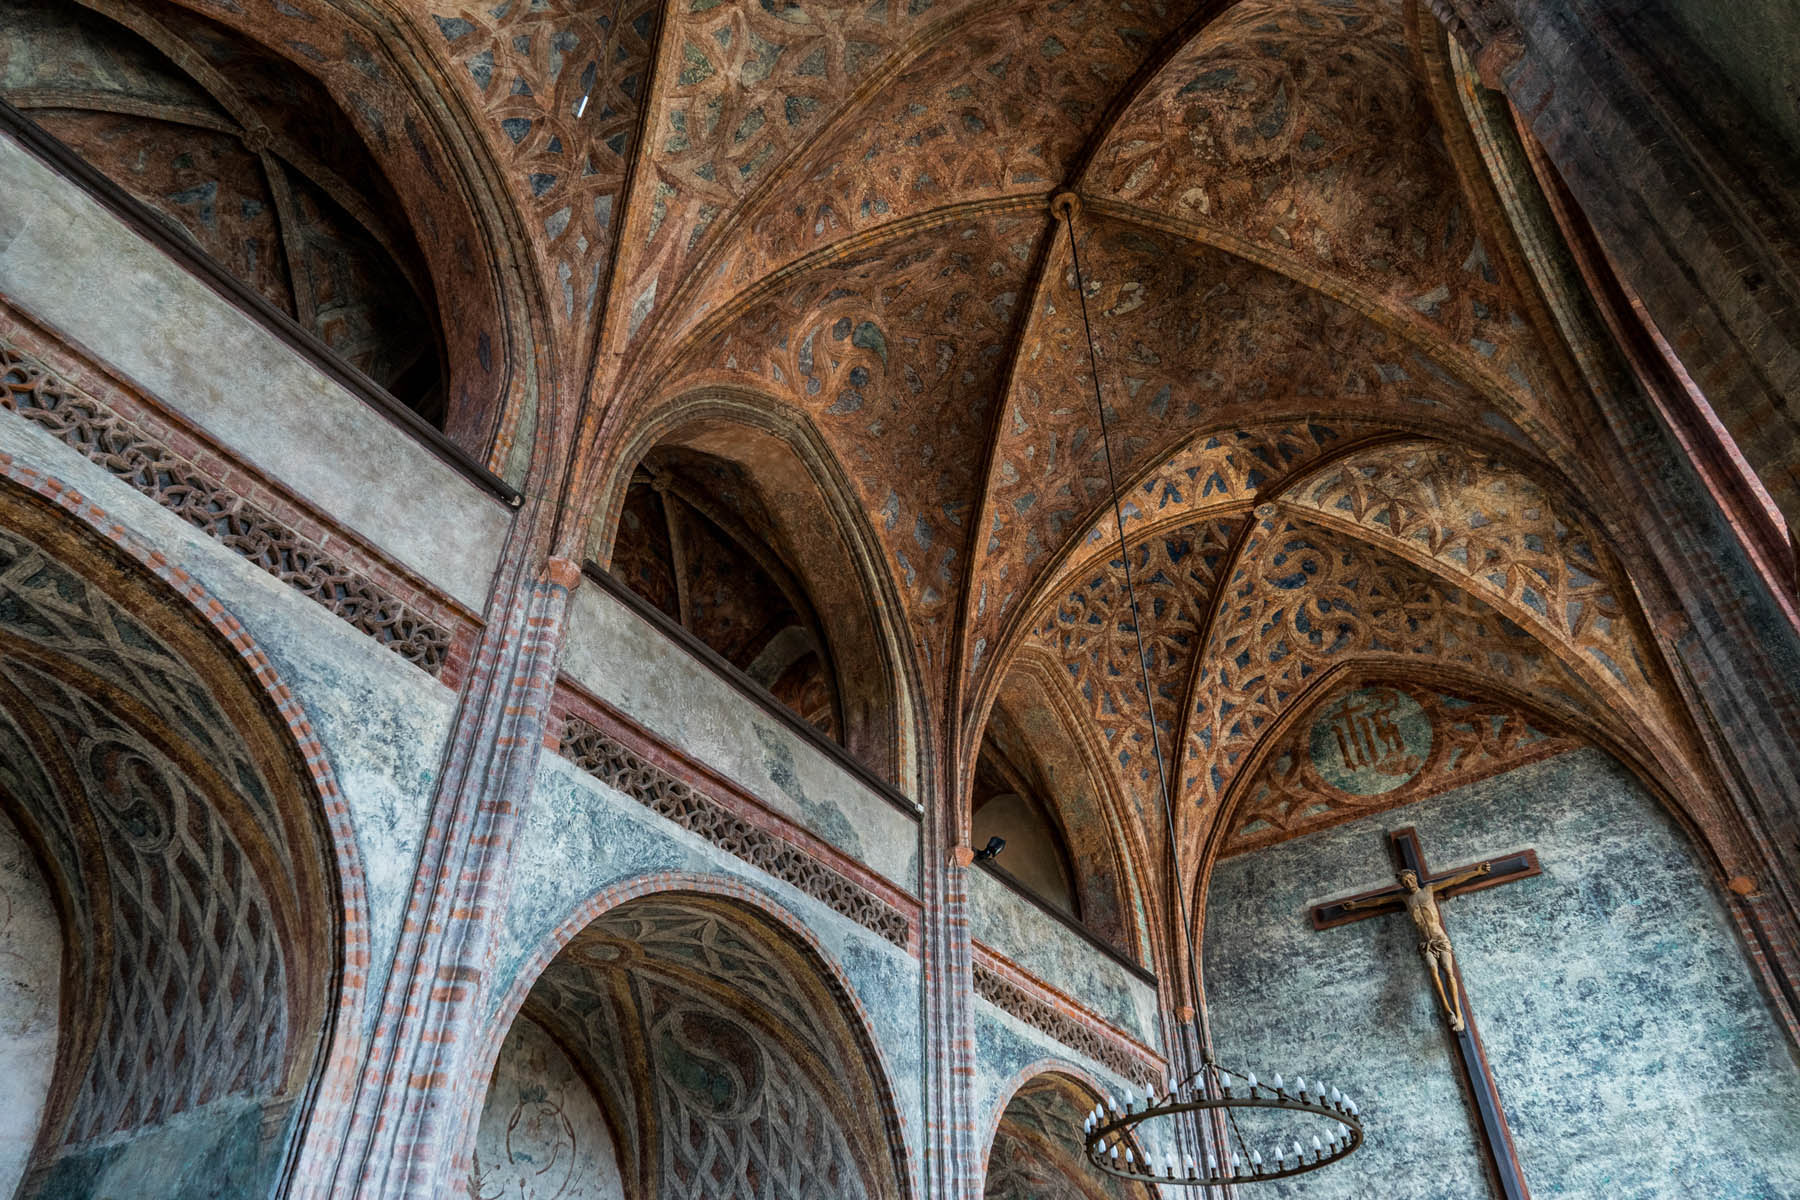 Rainer_Steussloff-Sacred_places_bishop-residence-Ziesar.jpg